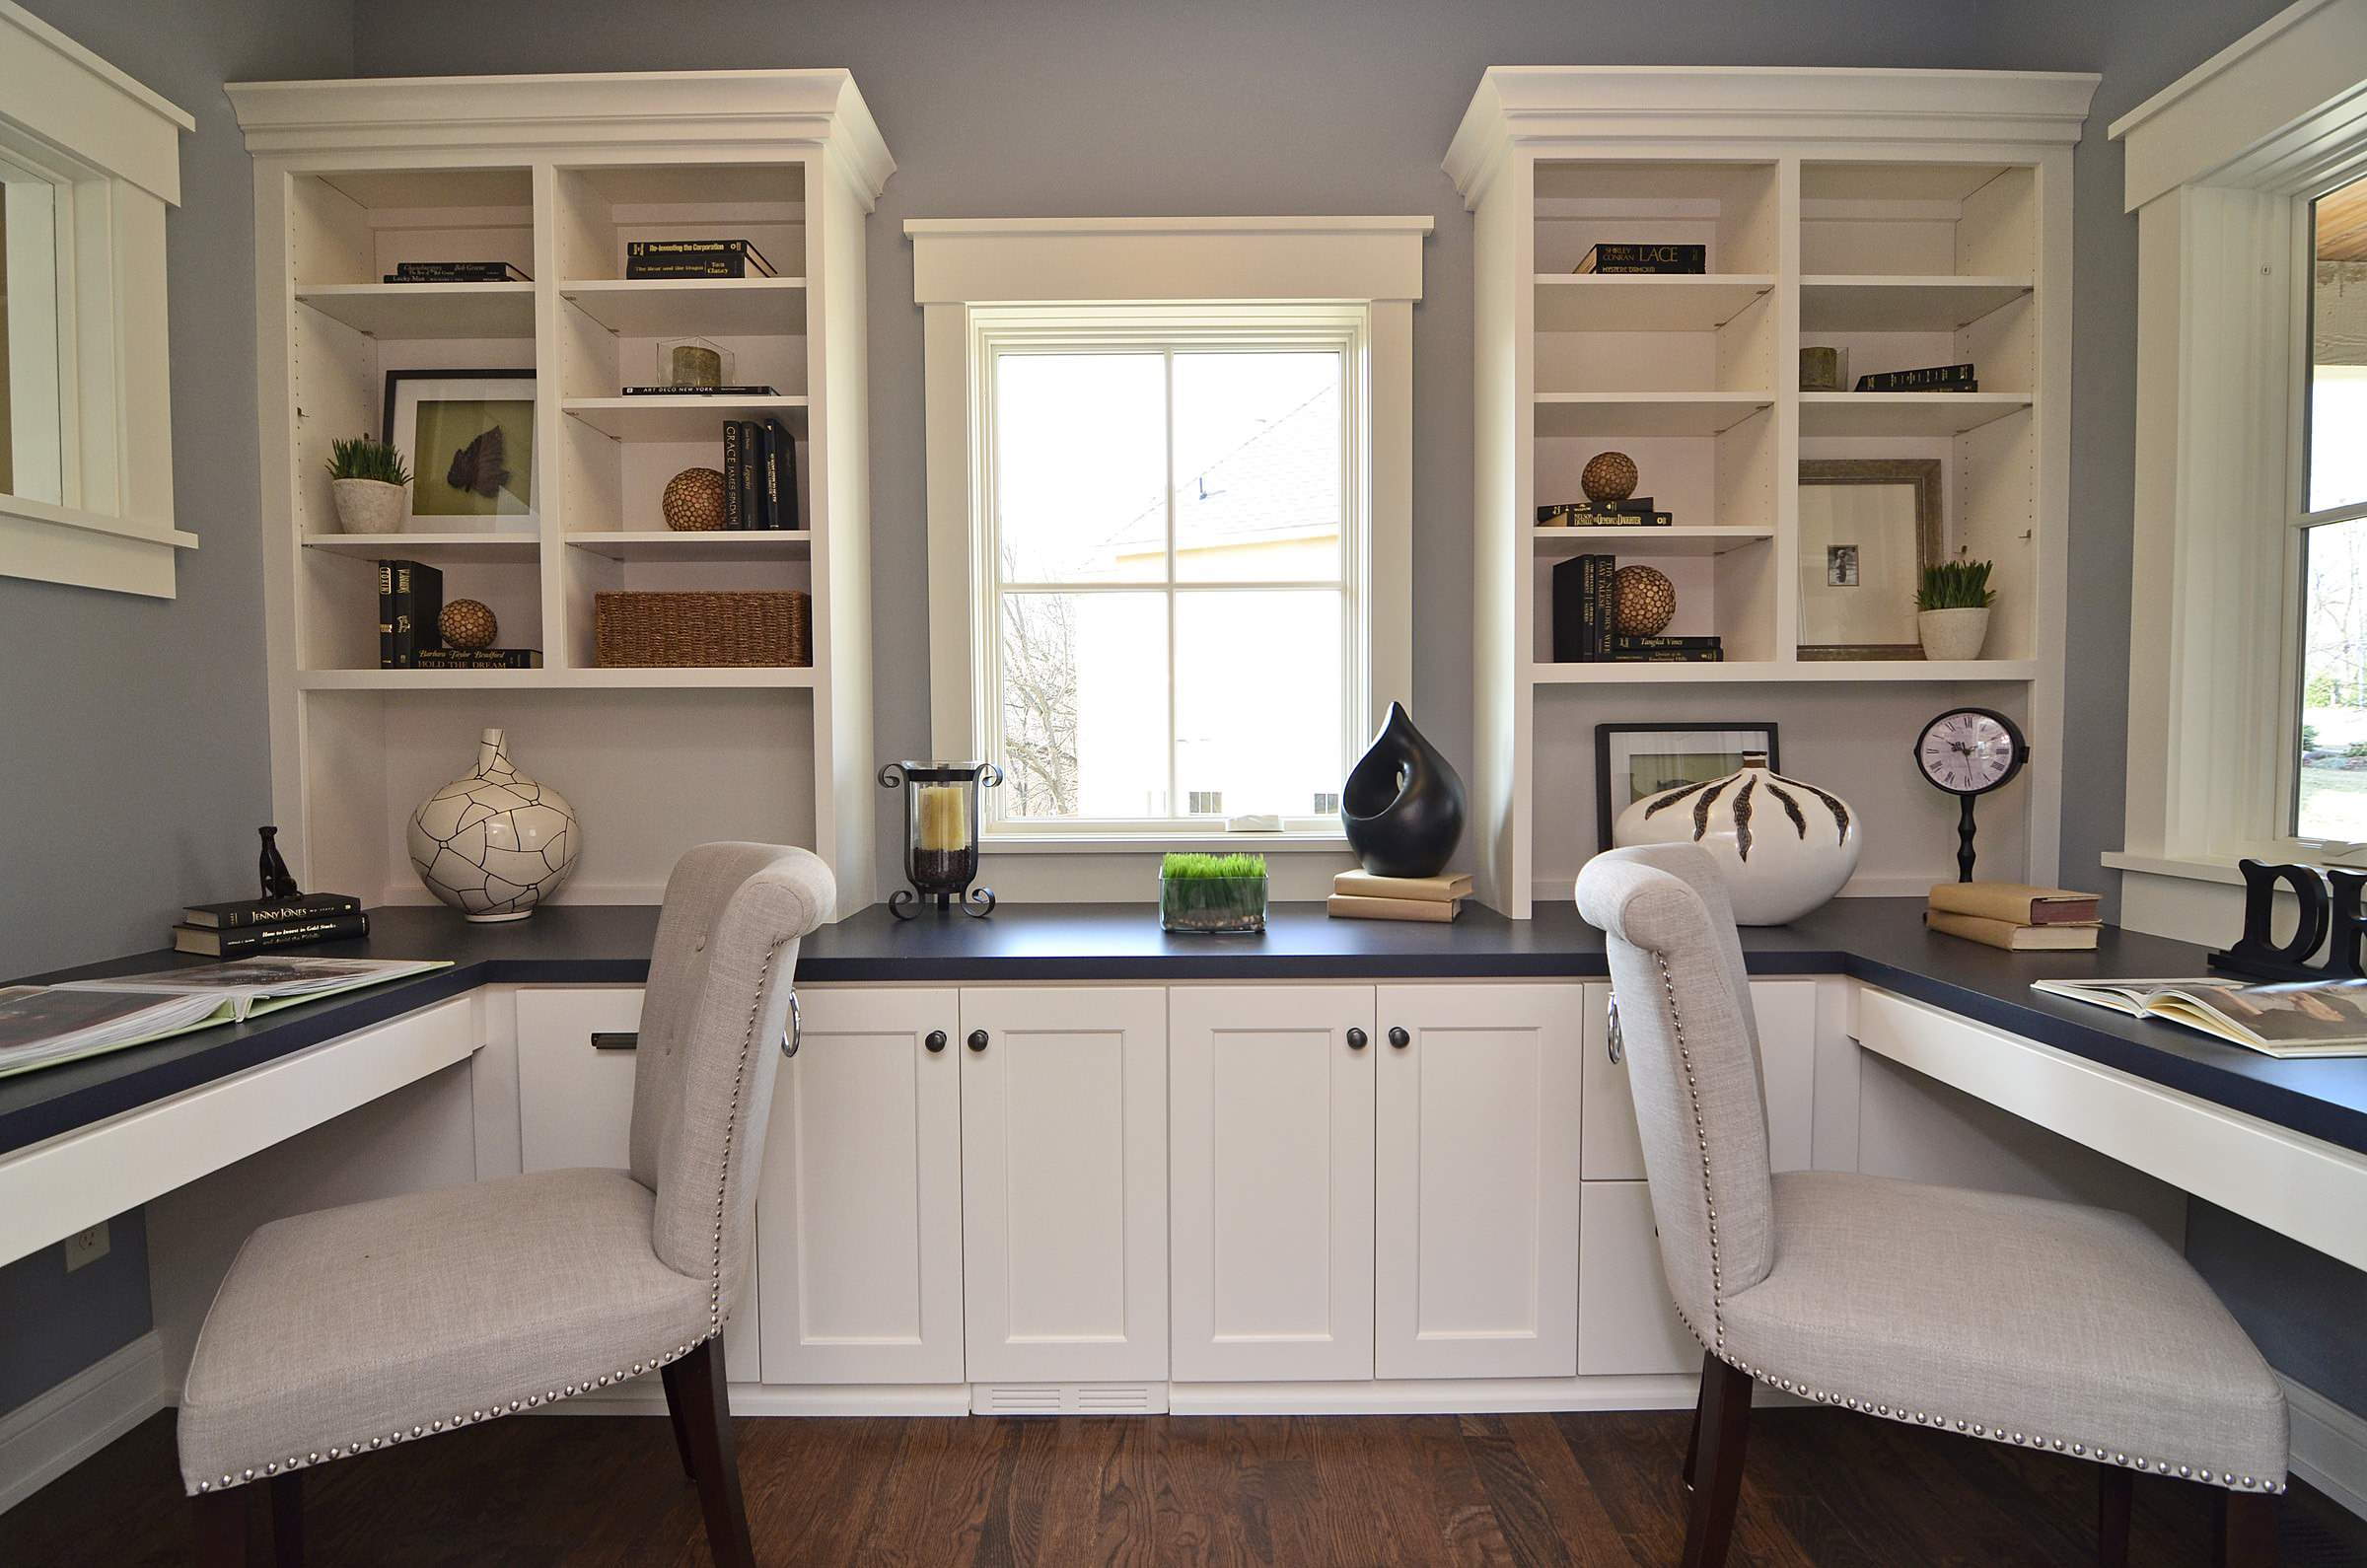 Construction companies near me Traditional Home Office built-in desk dark floor gray walls shared workspace